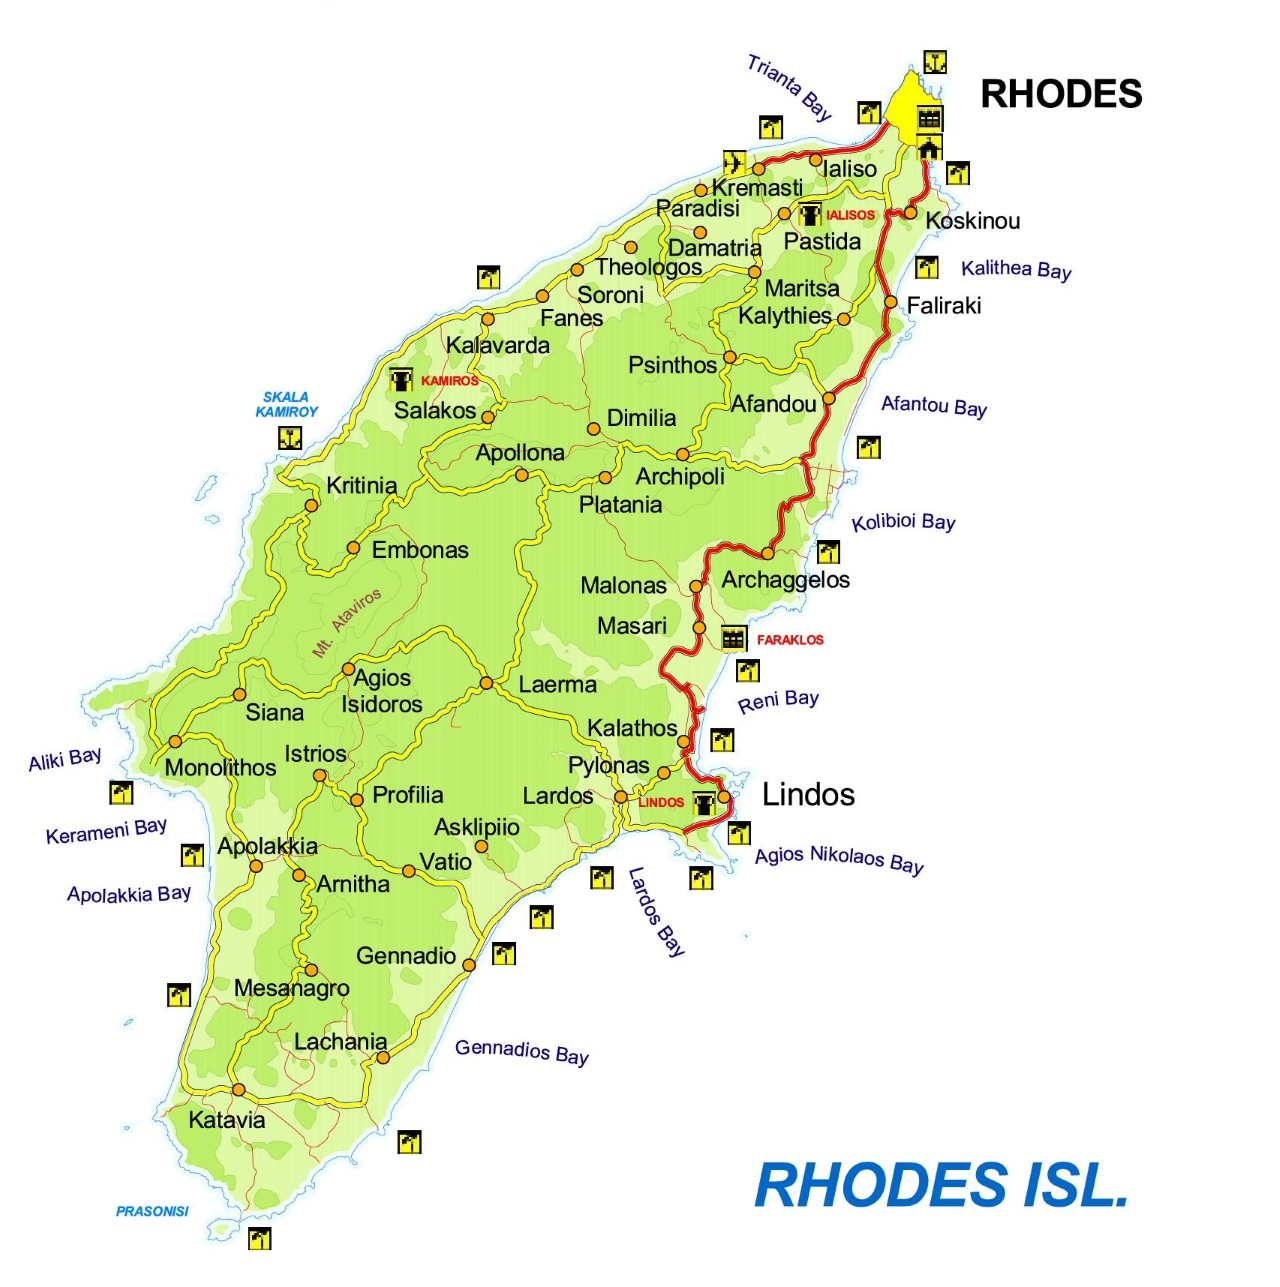 map of rhodes island greece Map Of Rhodes With Cities And Towns map of rhodes island greece